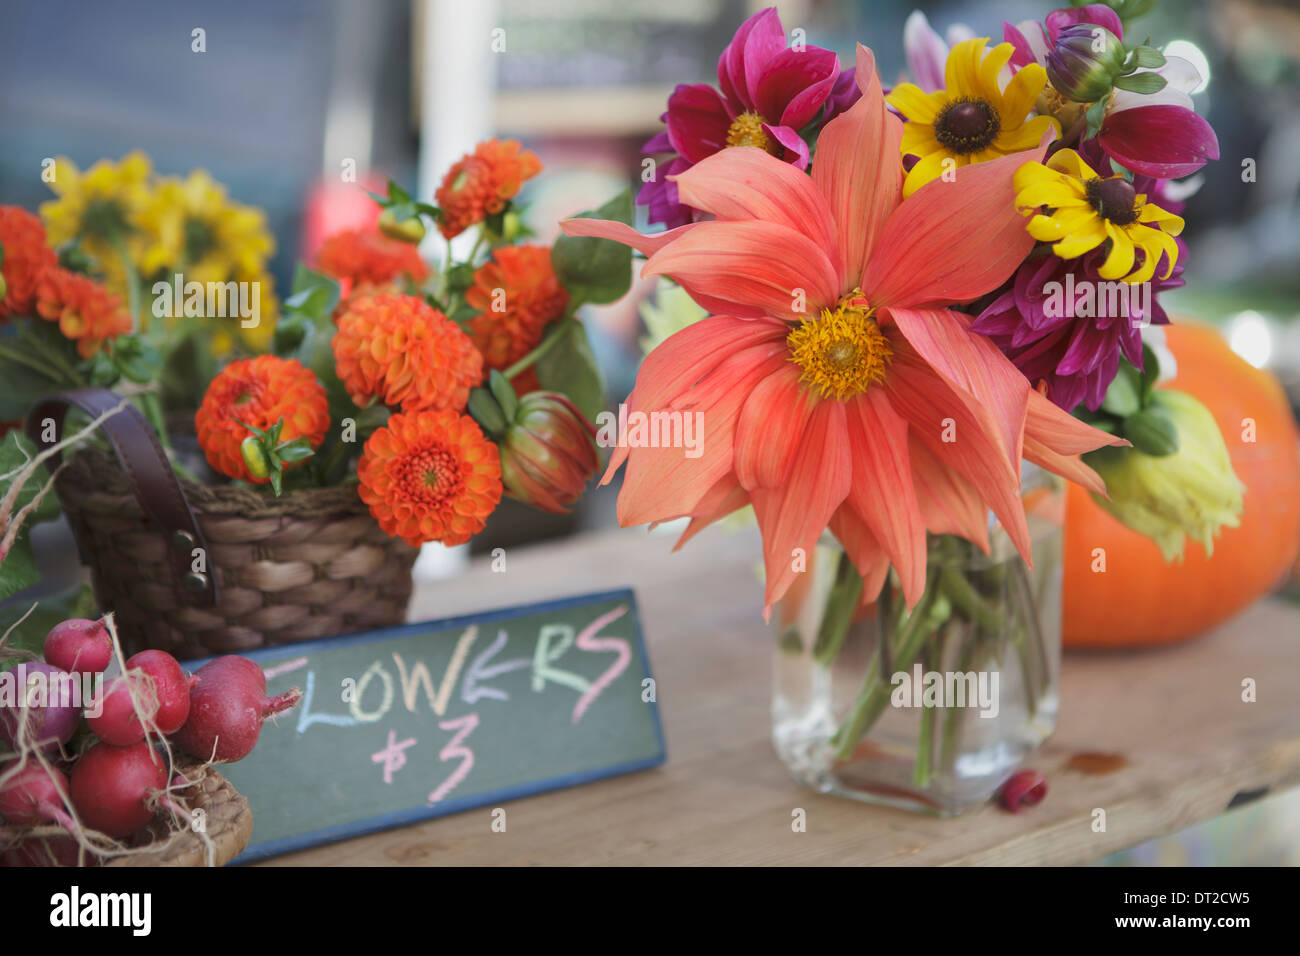 yellow flower vase sale with Stock Photo Fresh Orange Flowers On Display At A Farmers Market 66436865 on efavormart in addition FreshProducts moreover Paintings Flowers further Wonderful Wall Art Mirror From Glass With Fashion Style additionally Freesia Bulb.